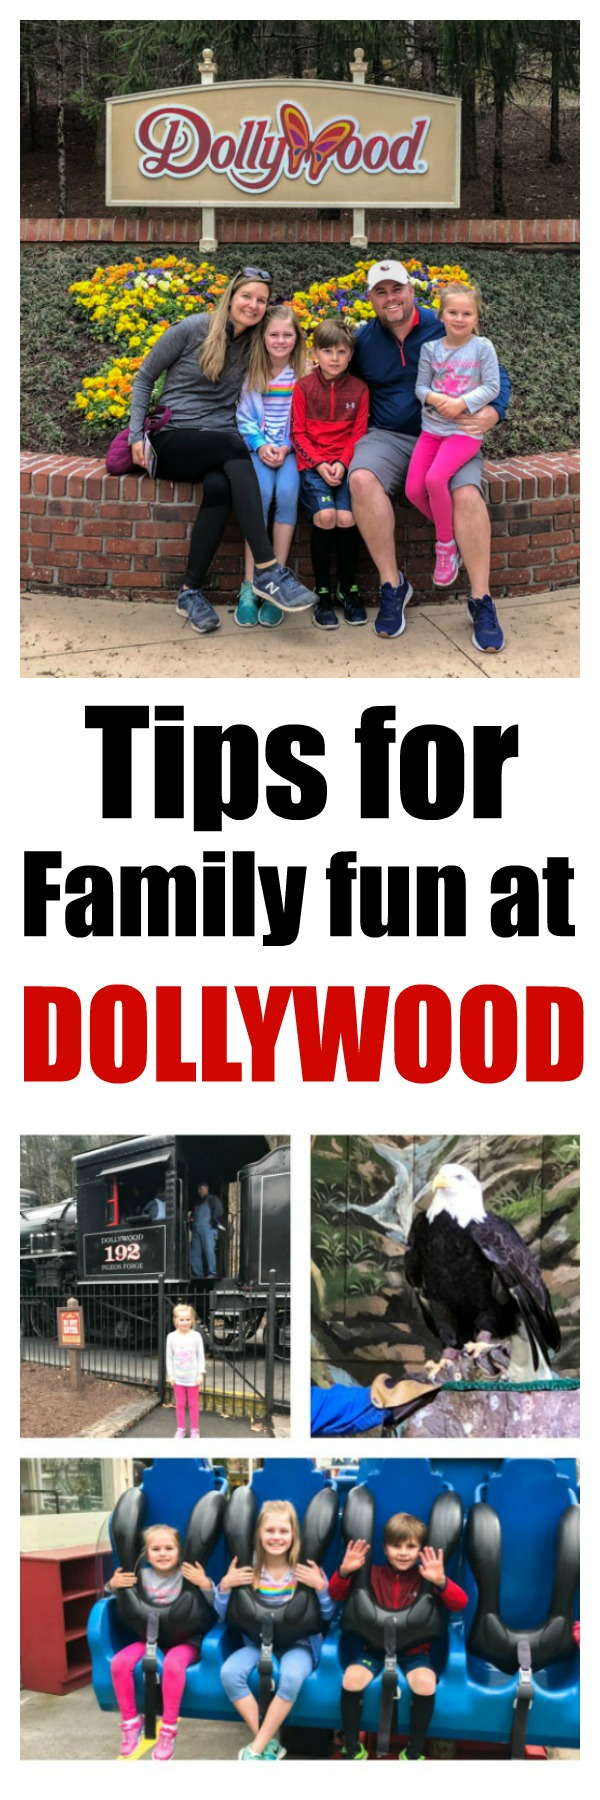 Planning a trip to Dollywood? Check out these tips on a great family vacation with information on rides, food, tickets and more! #Dollywood @Dollywood #familytravel #familyvacation #tennessee #greatsmokeymountains